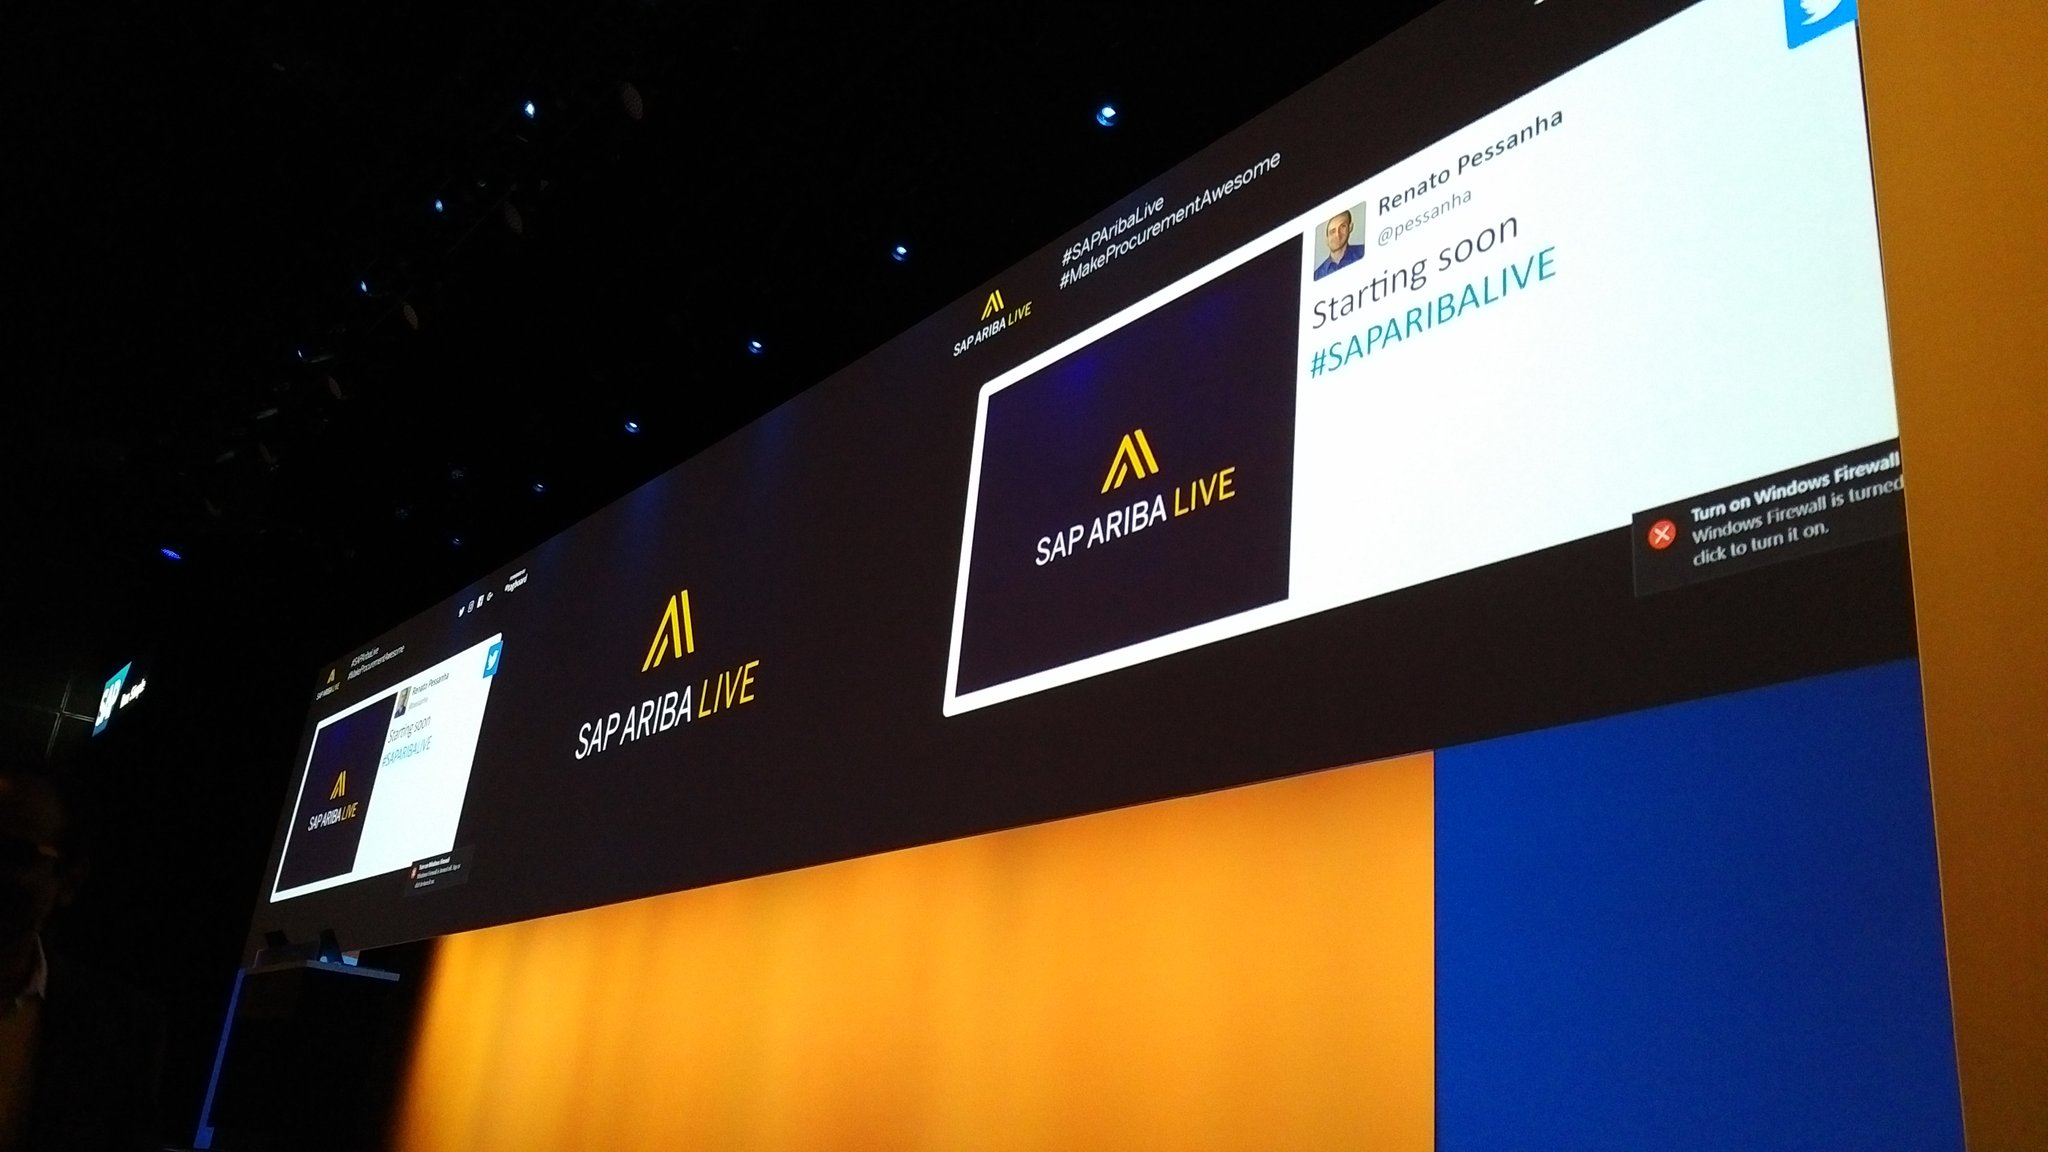 And it's is [TweetStorm]={ON} for #SAPARIBALIVE - likely sprinkled with some #IBMInterConnnect https://t.co/Bl9AxF85s5